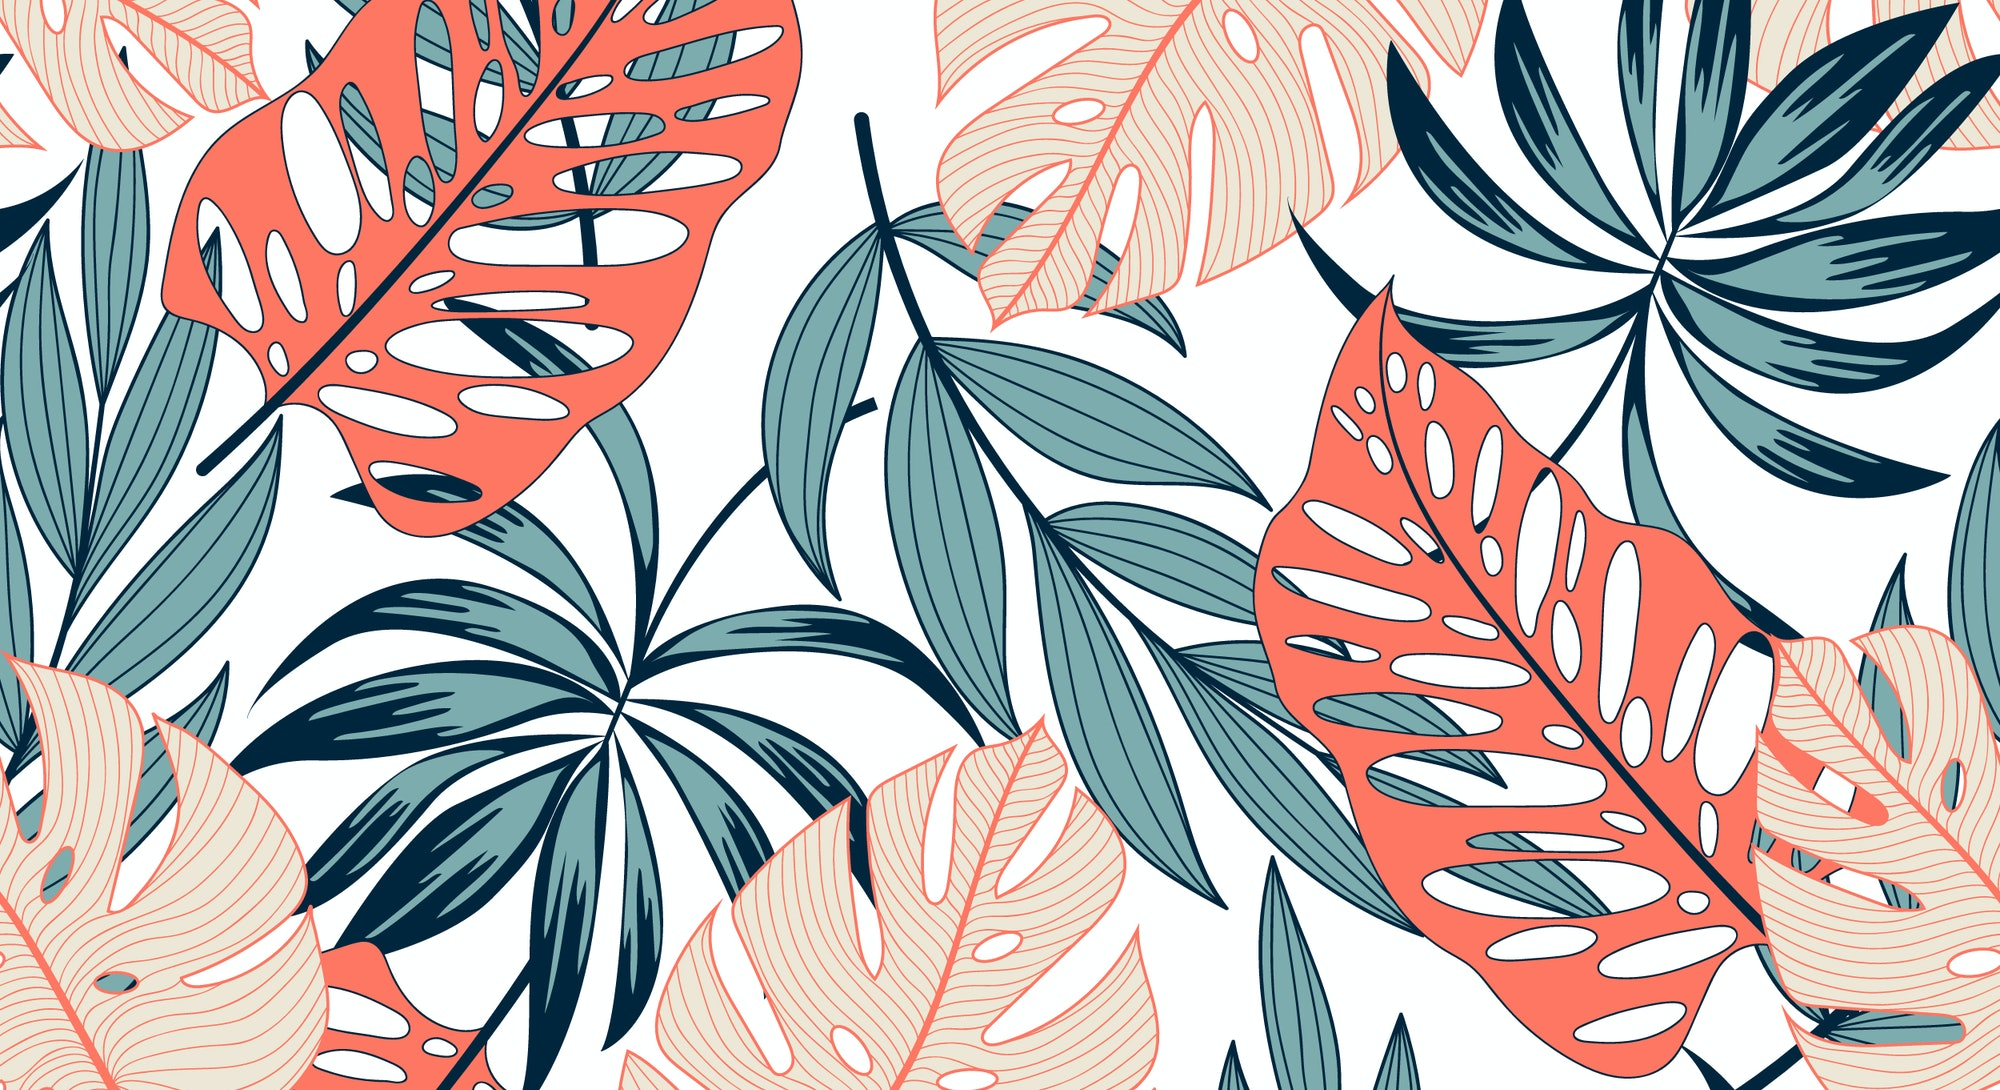 Fashionable seamless tropical pattern with bright plants and leaves on a delicate background. Beautiful exotic plants. Trendy summer Hawaii print. Colorful stylish floral.